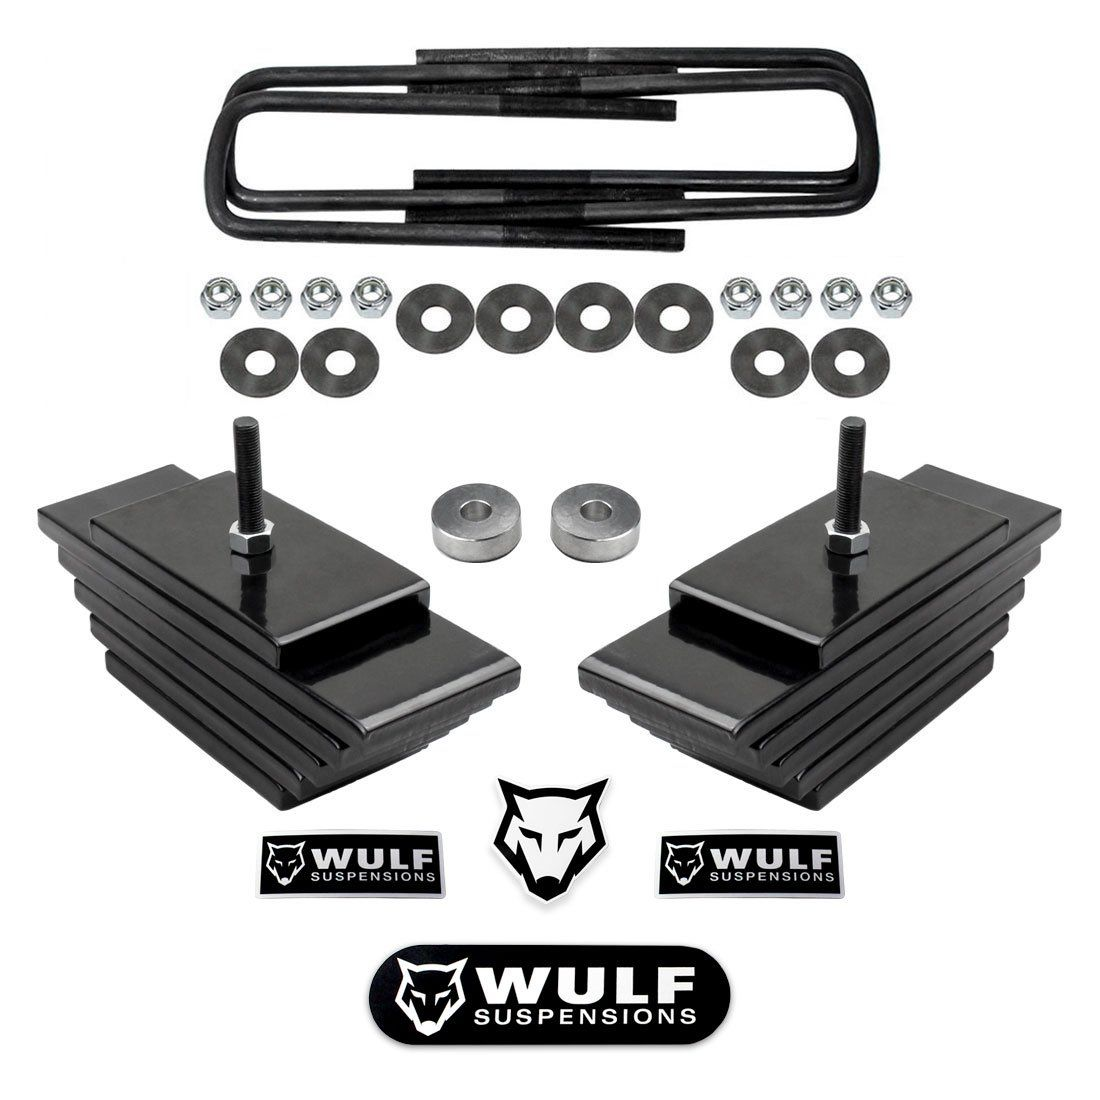 Wulf 1999 2004 Ford F250 F350 Super Duty 3 Front Lift Leveling Kit 4x4 4wd Suspensions Click On The Image For Additional F250 2005 Ford Excursion Lift Kits